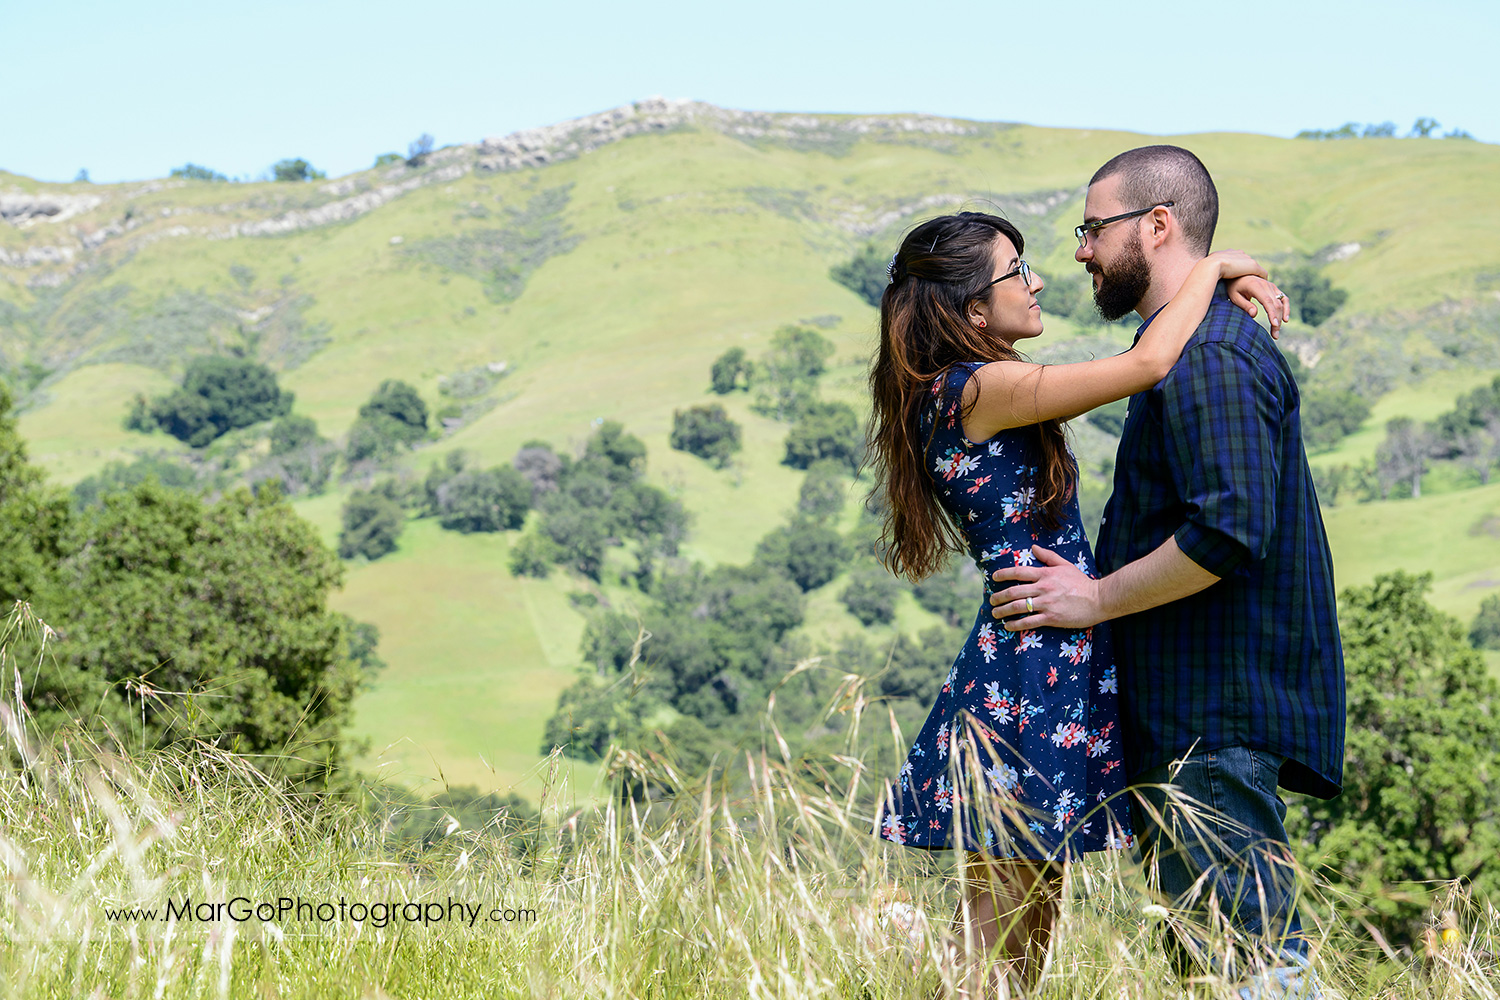 3/4 portrait of woman in blue dress and man in blue shirt facing each other during engagement session at Sunol Regional Wilderness